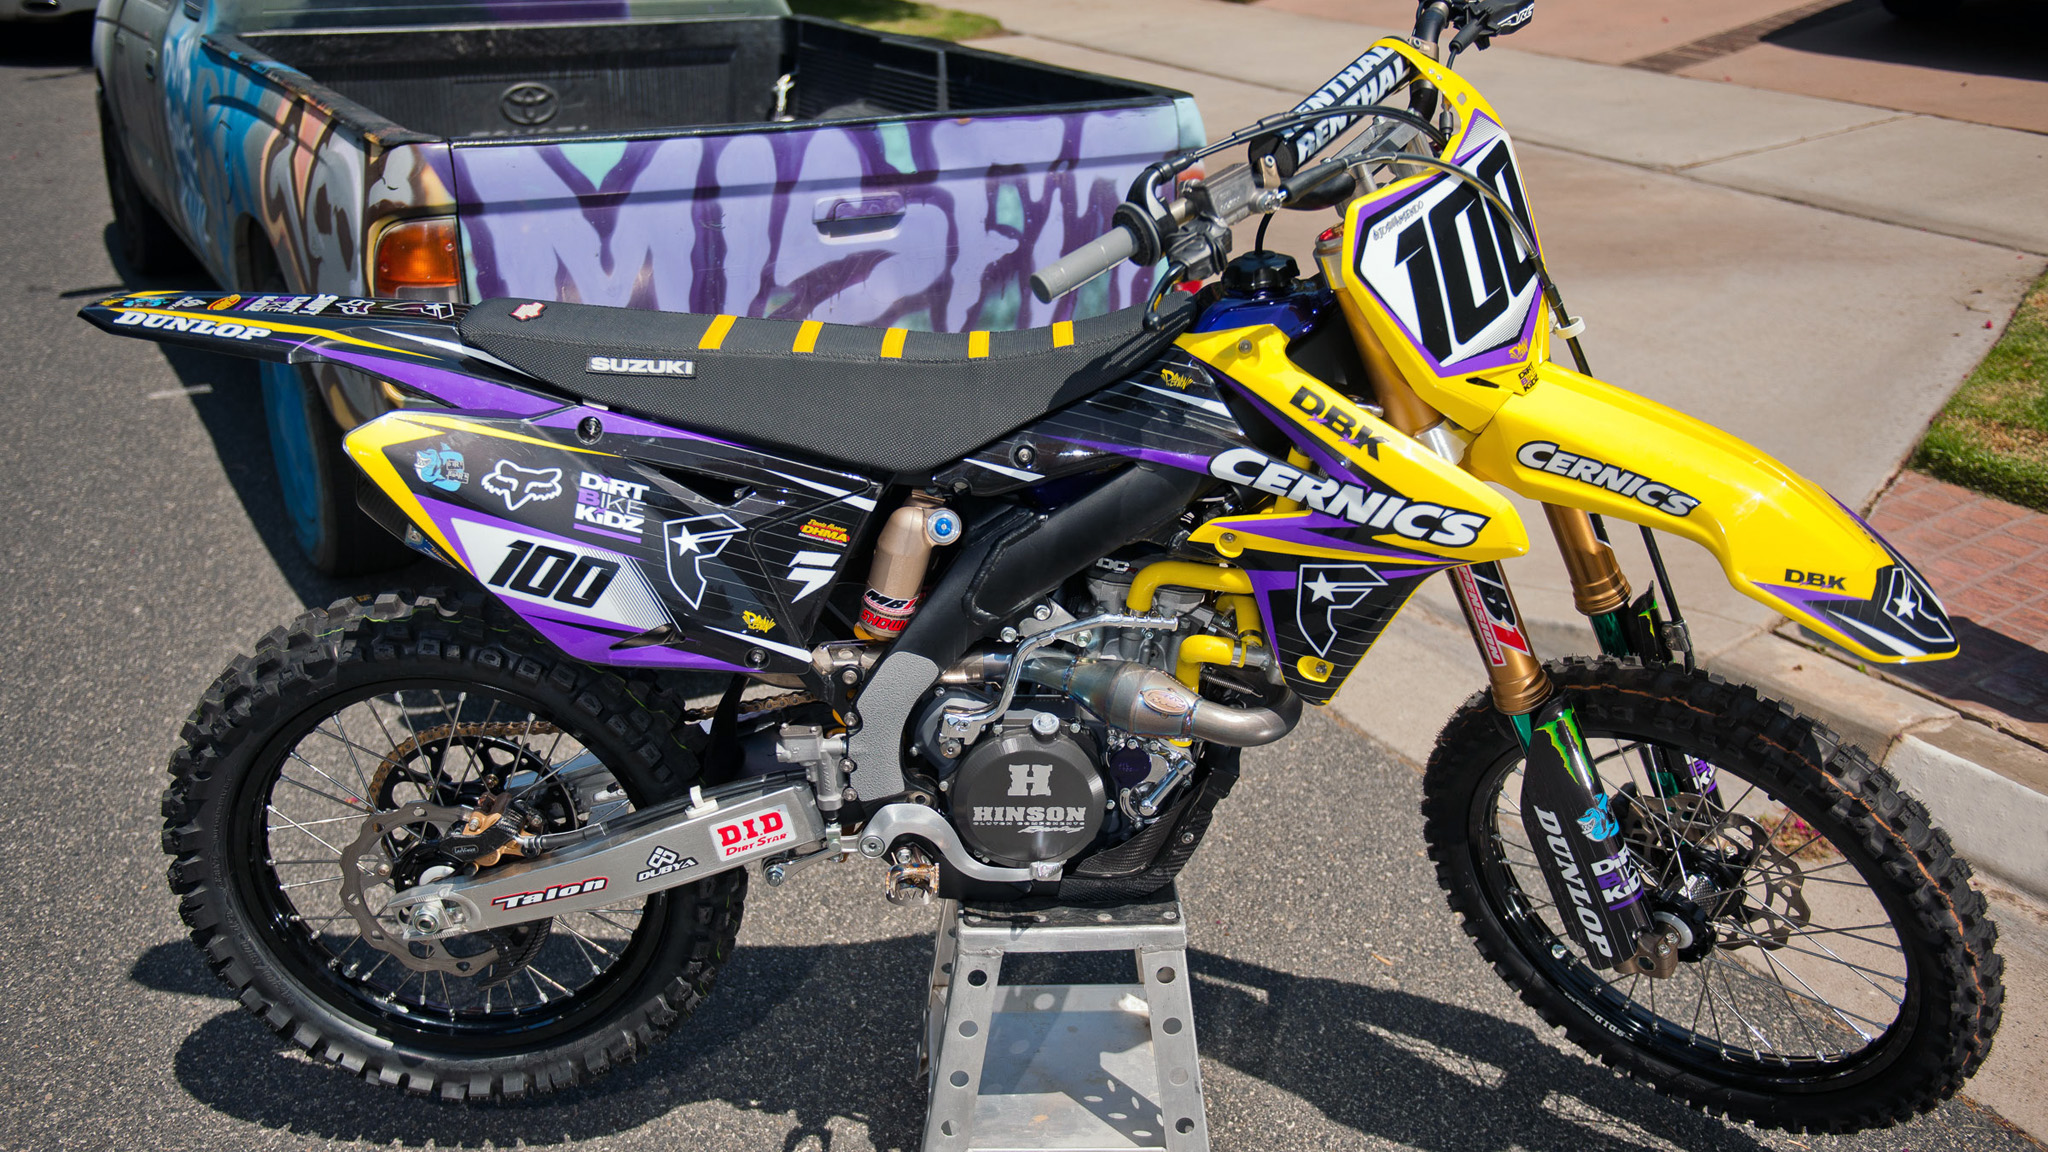 Graphic companies moto related motocross forums message boards vital mx